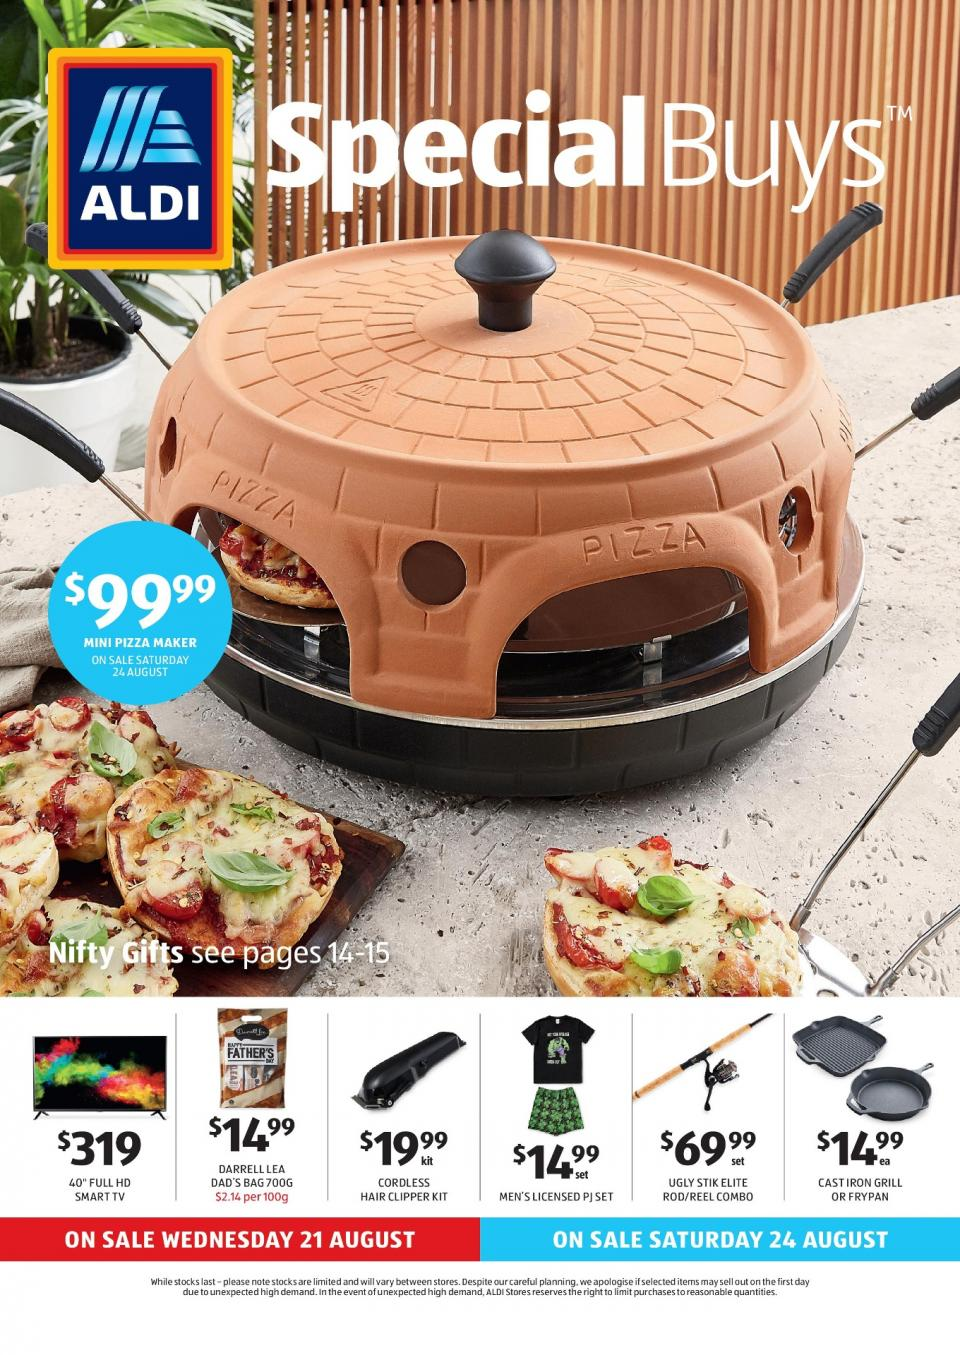 aldi catalogue special buys week 34 2019